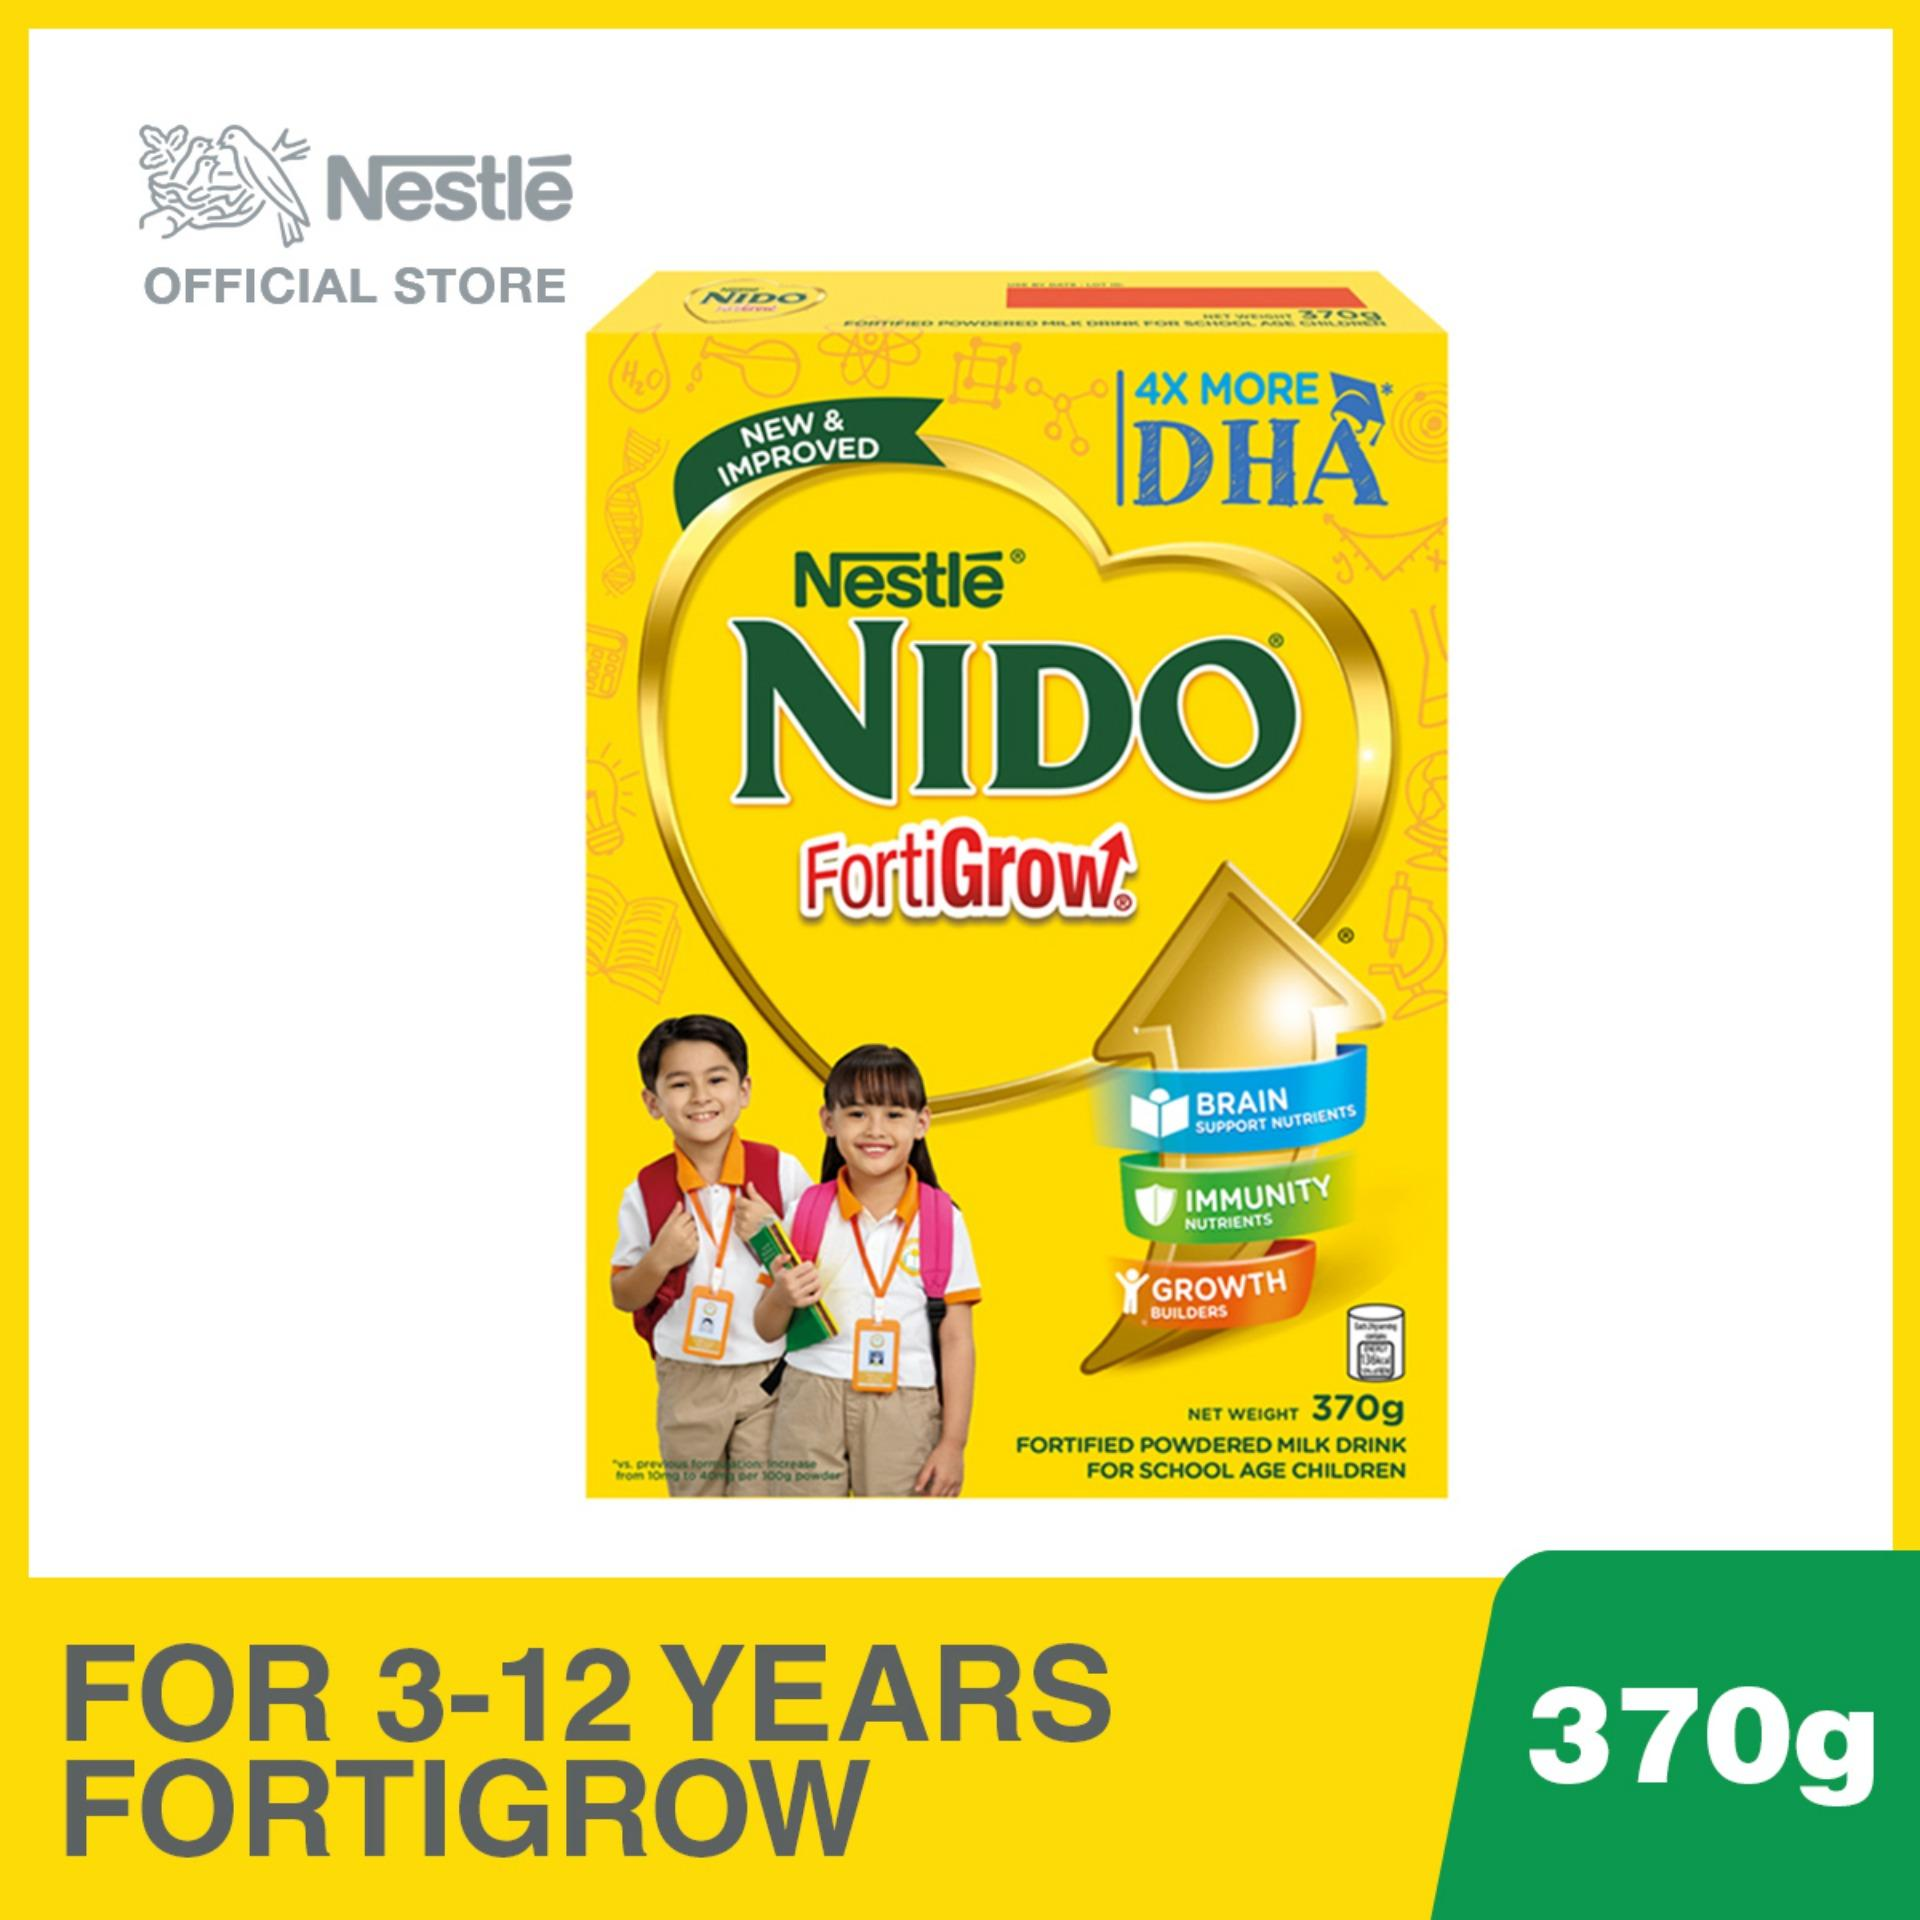 Nido Fortigrow Fortified Powdered Milk Drink 370g By Nestle Official Store.